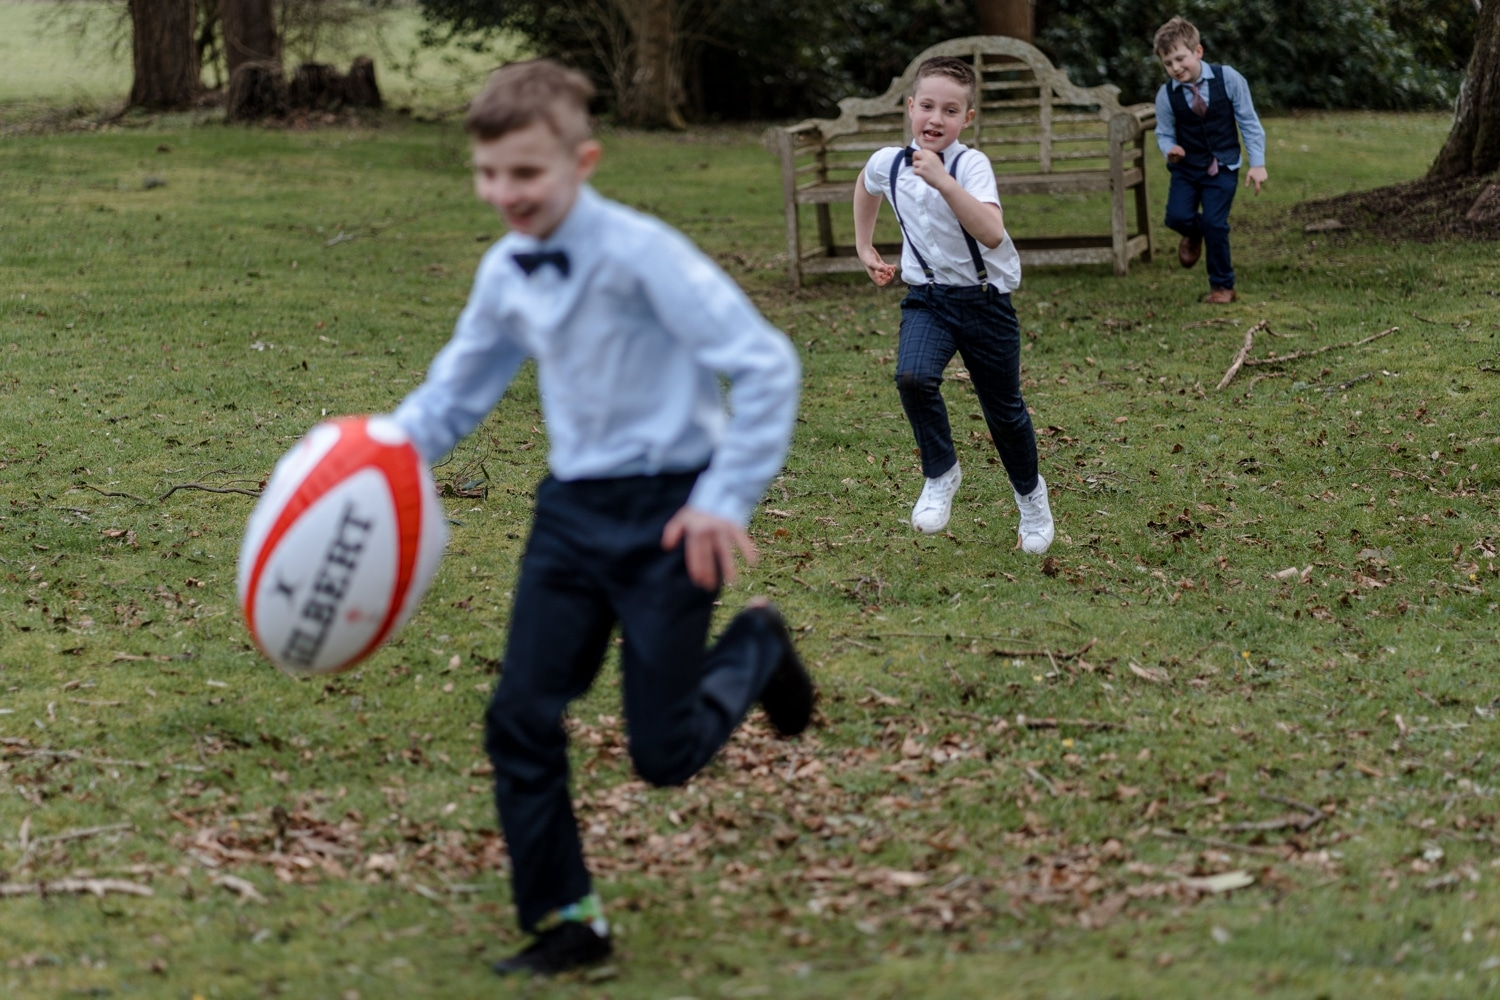 Boys playing rugby at wedding reception